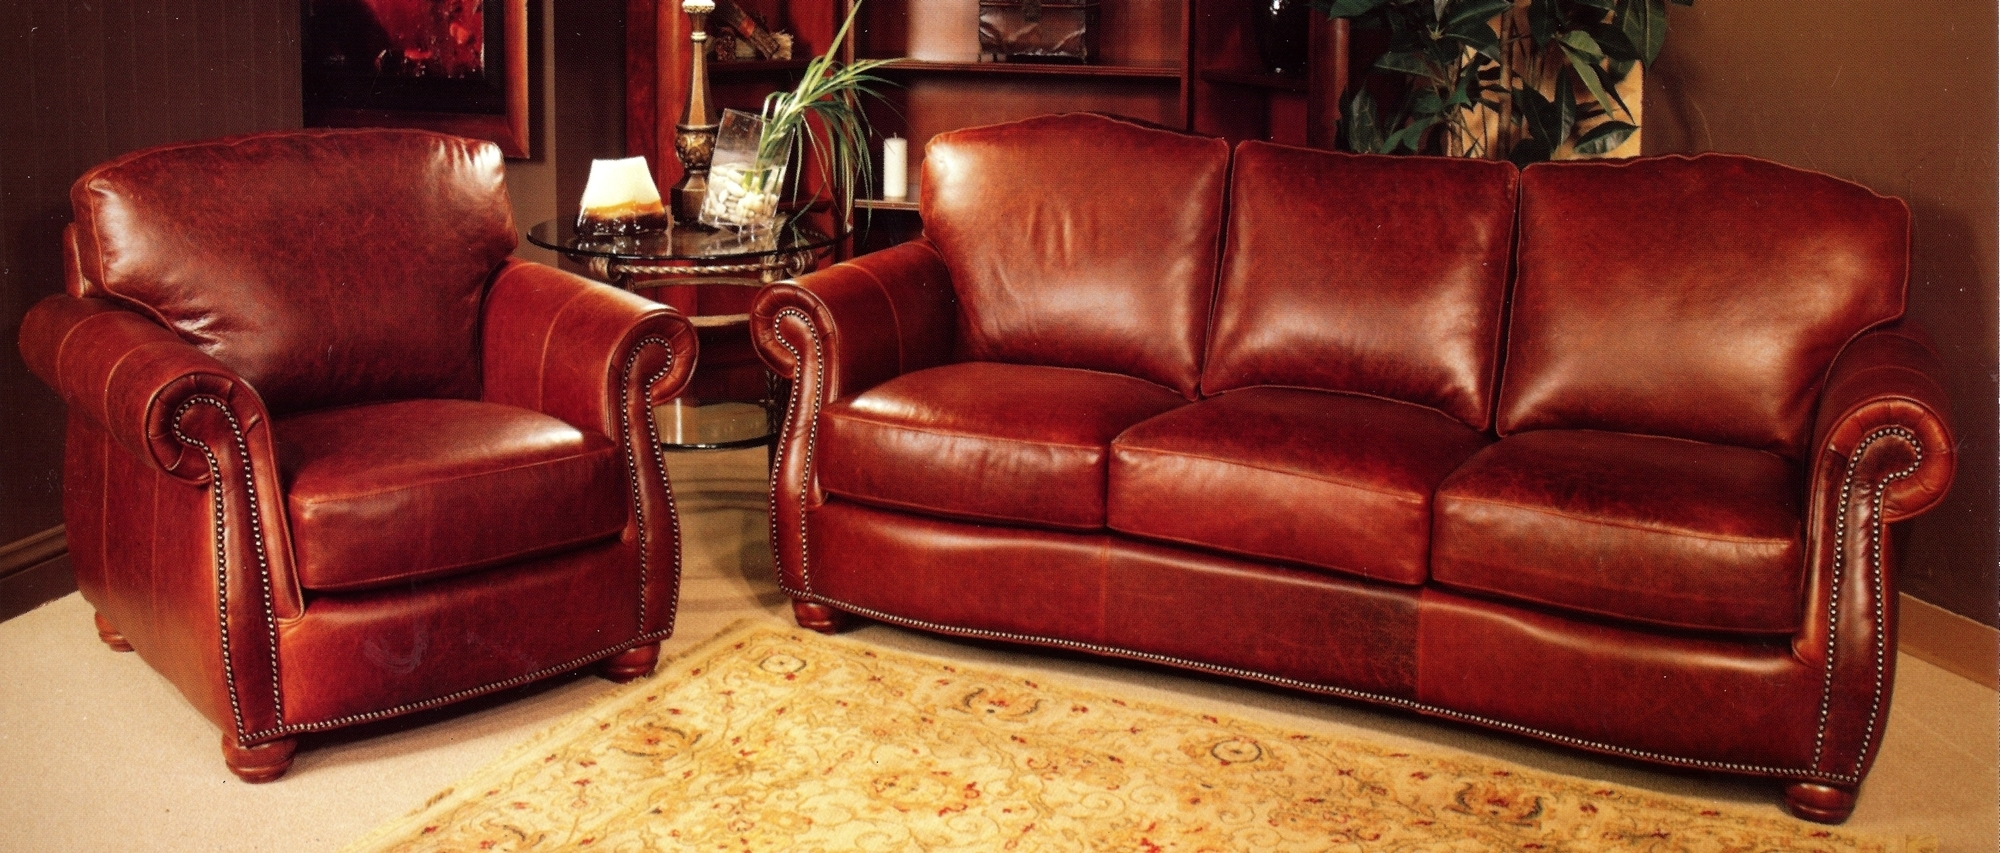 Rustic Red Leather Sofa And Rustic Red Leather Chair With Rustic In Most Up To Date Red Leather Sofas (View 16 of 20)